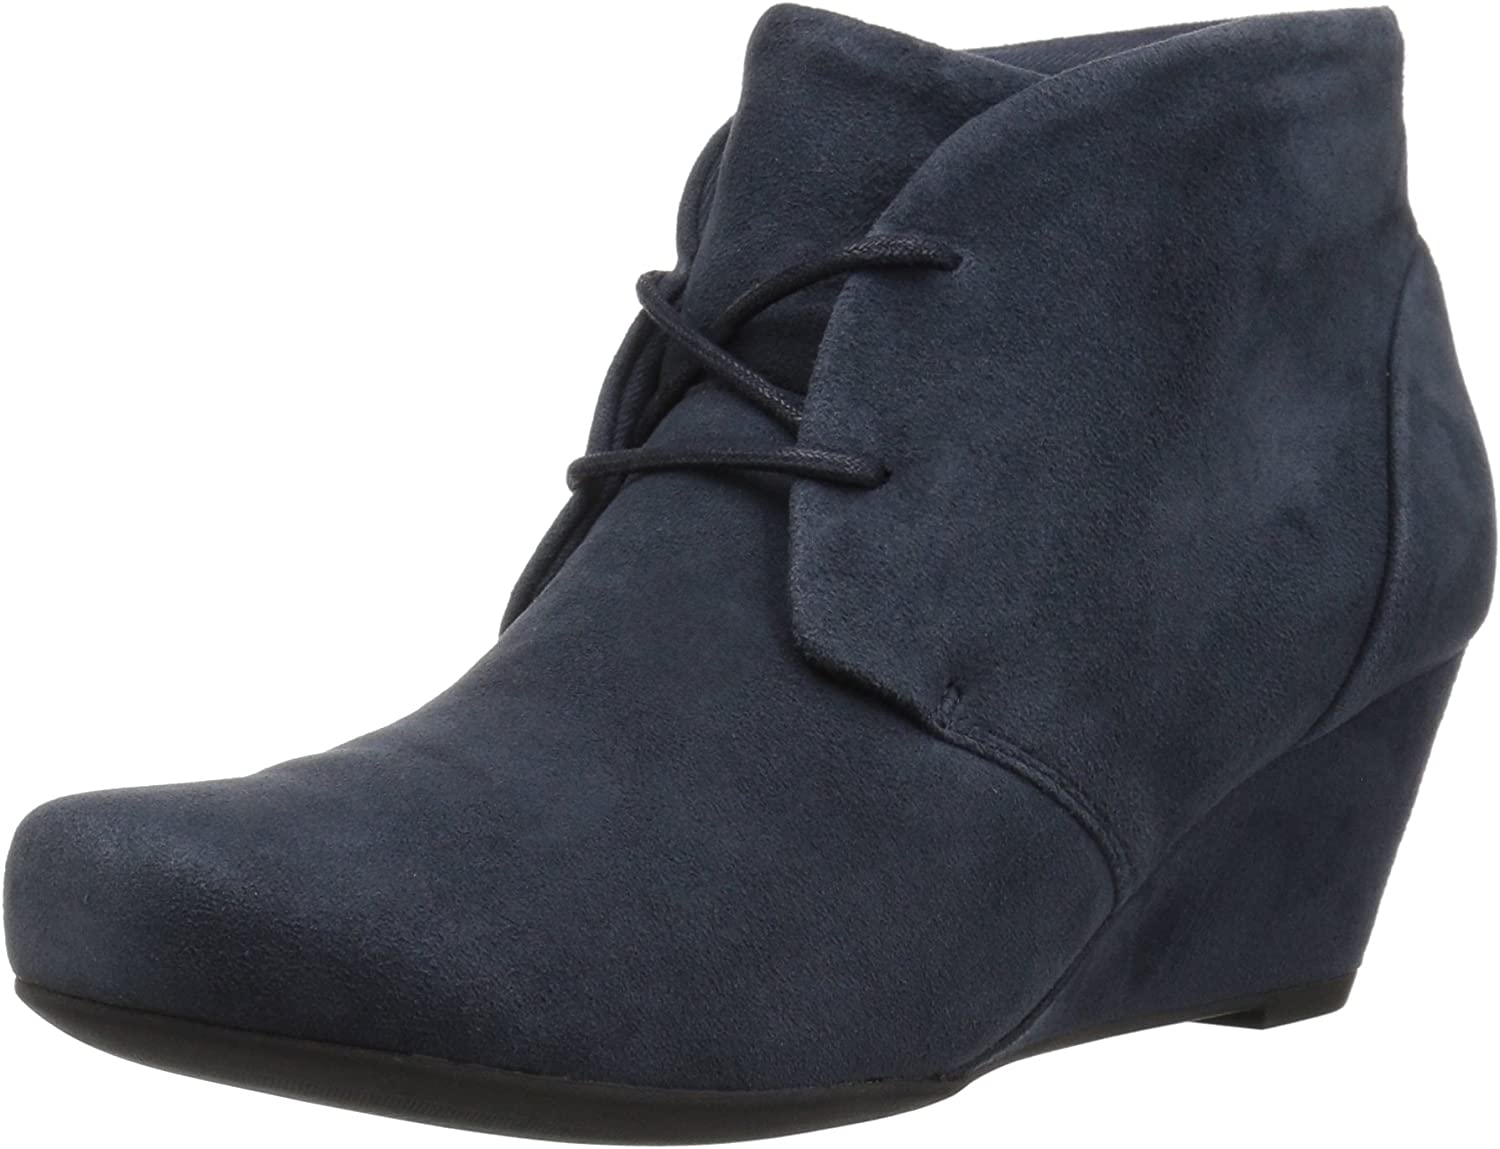 Clarks Women's Flores pink Ankle Boot